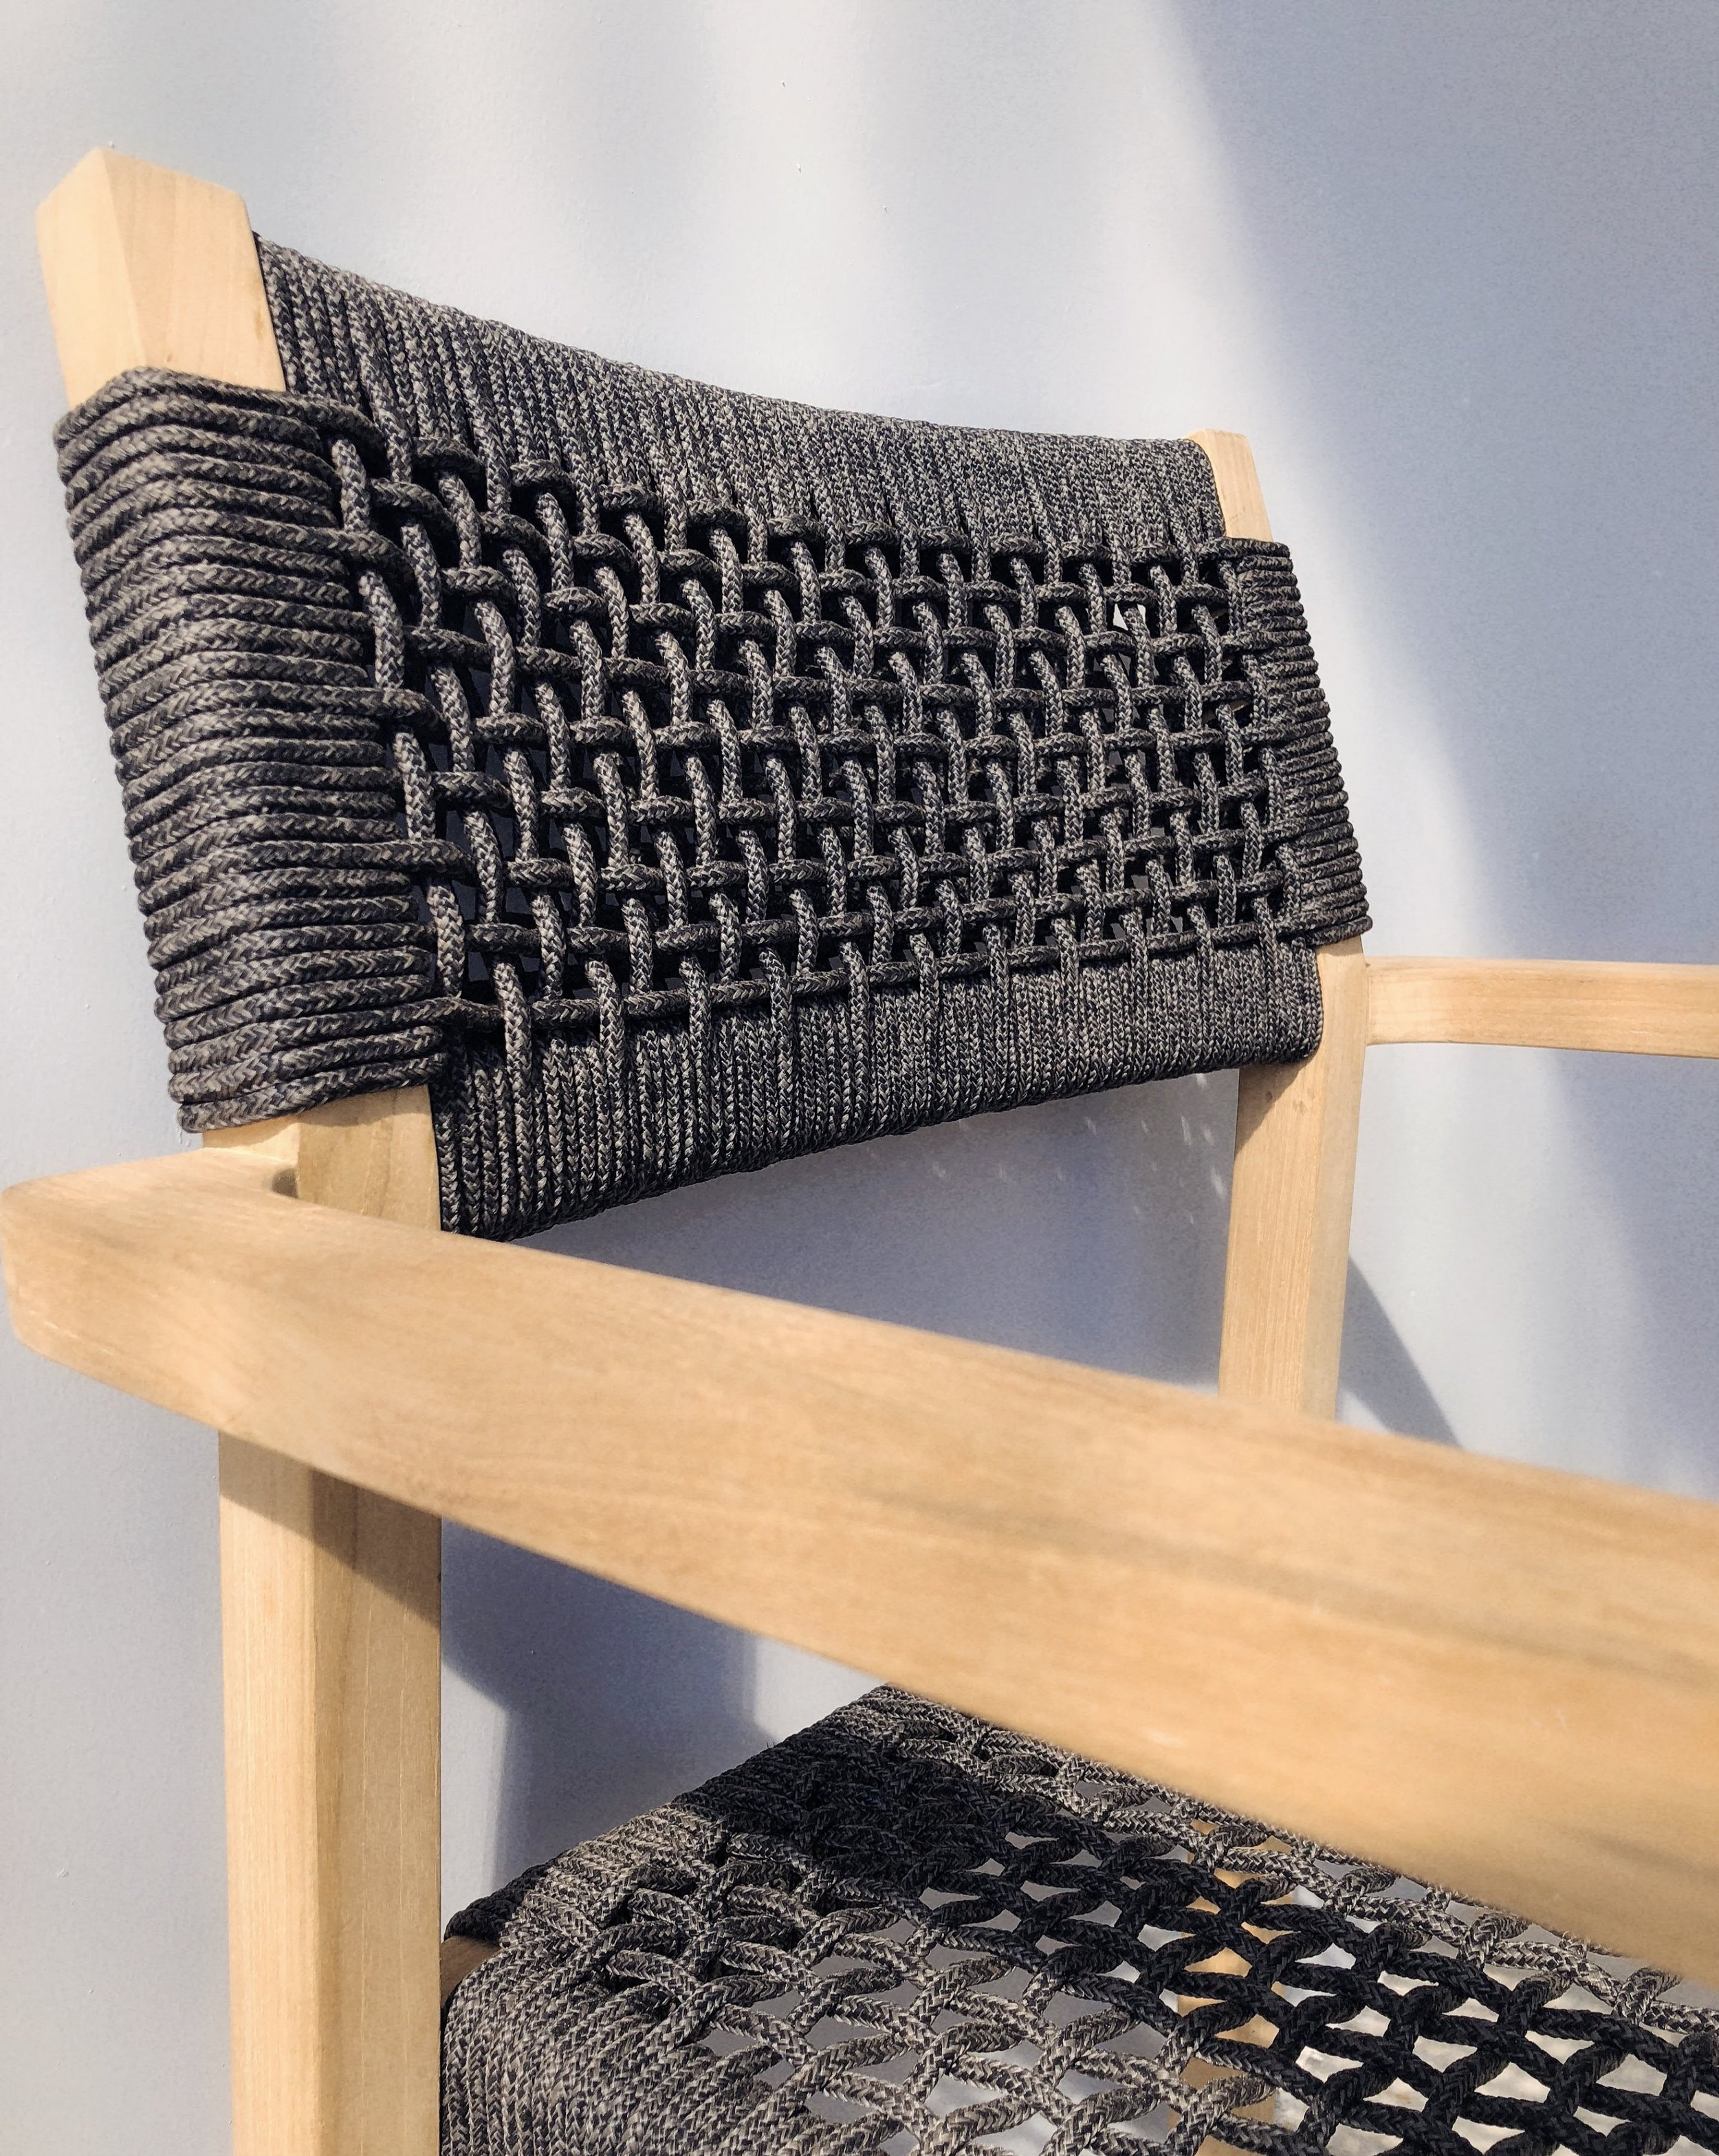 Reliable   Readily available expert consultation for clients to produce honest, ethical furnishing